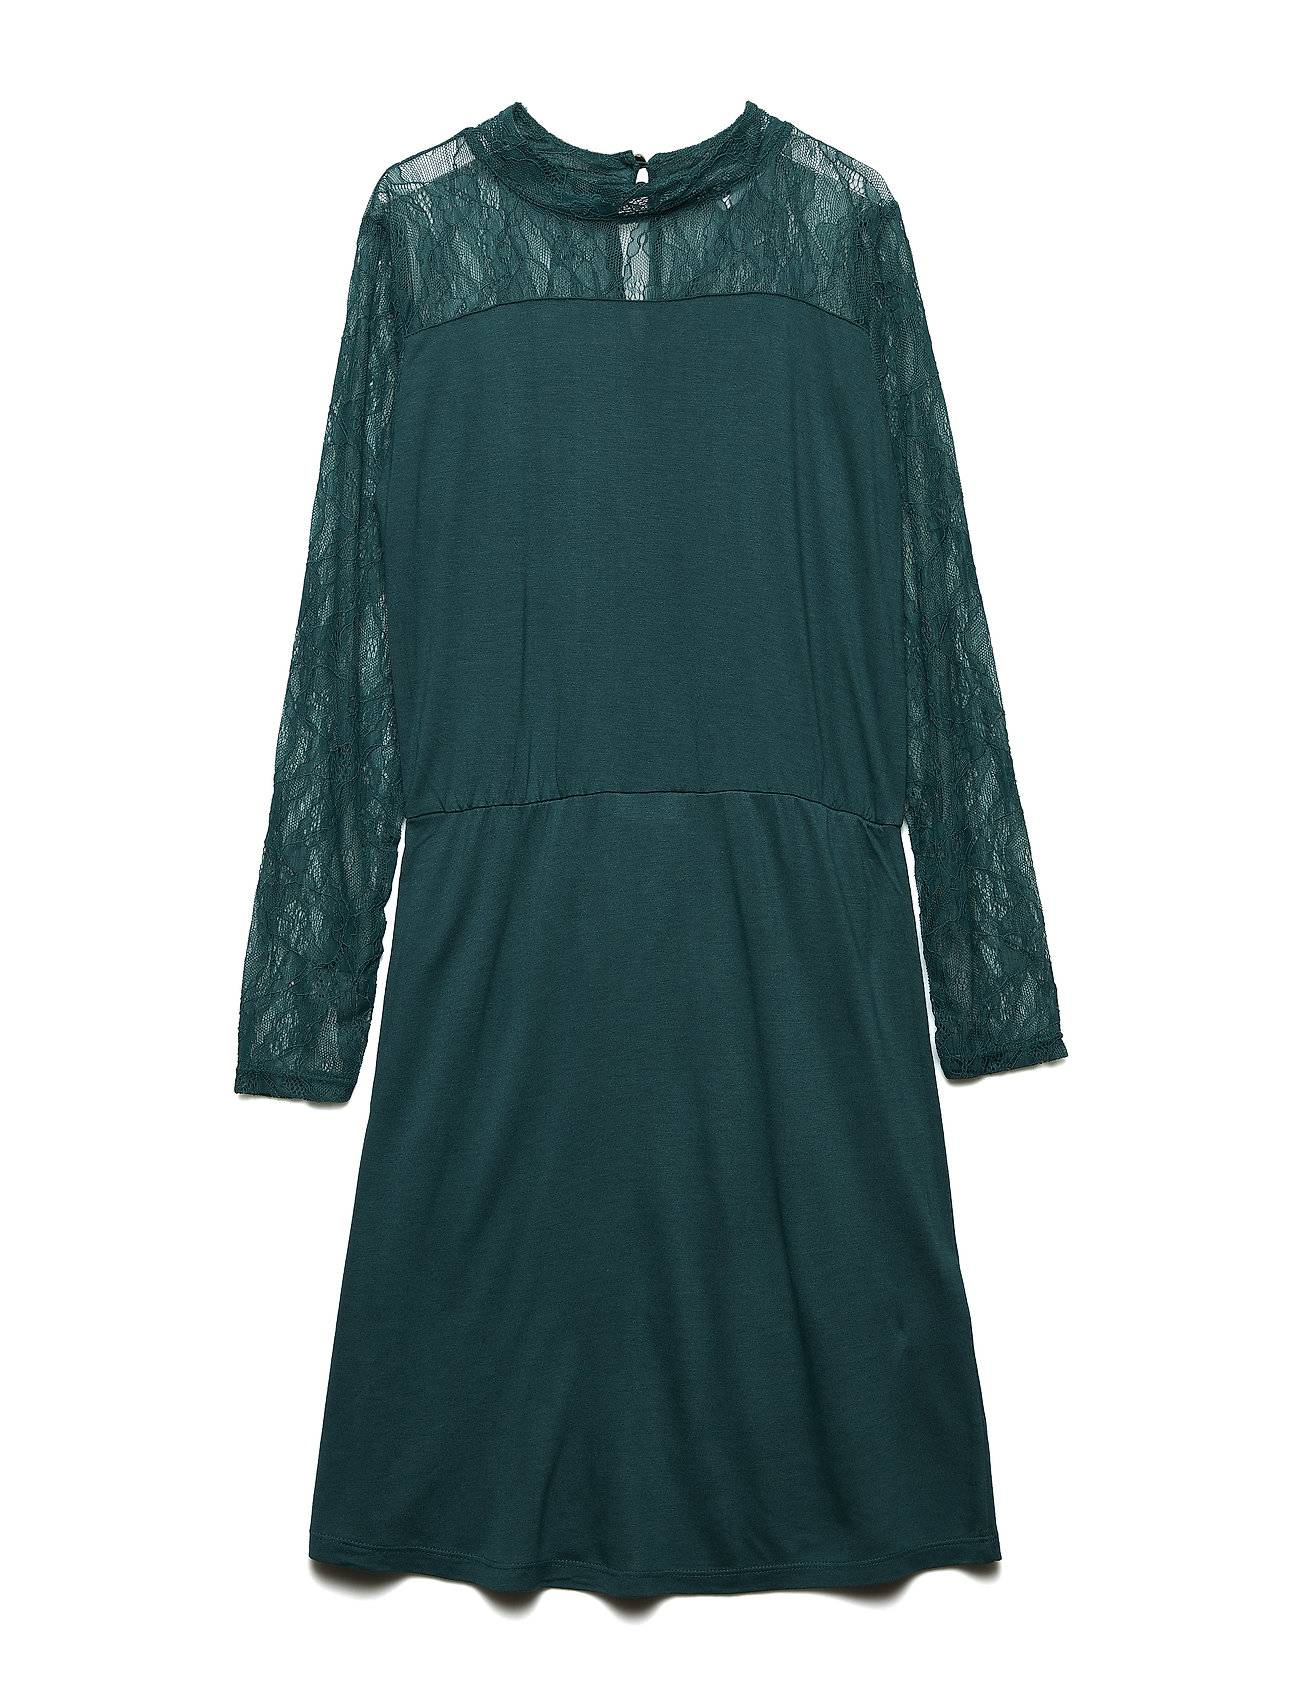 The New Isolde L_s Dress